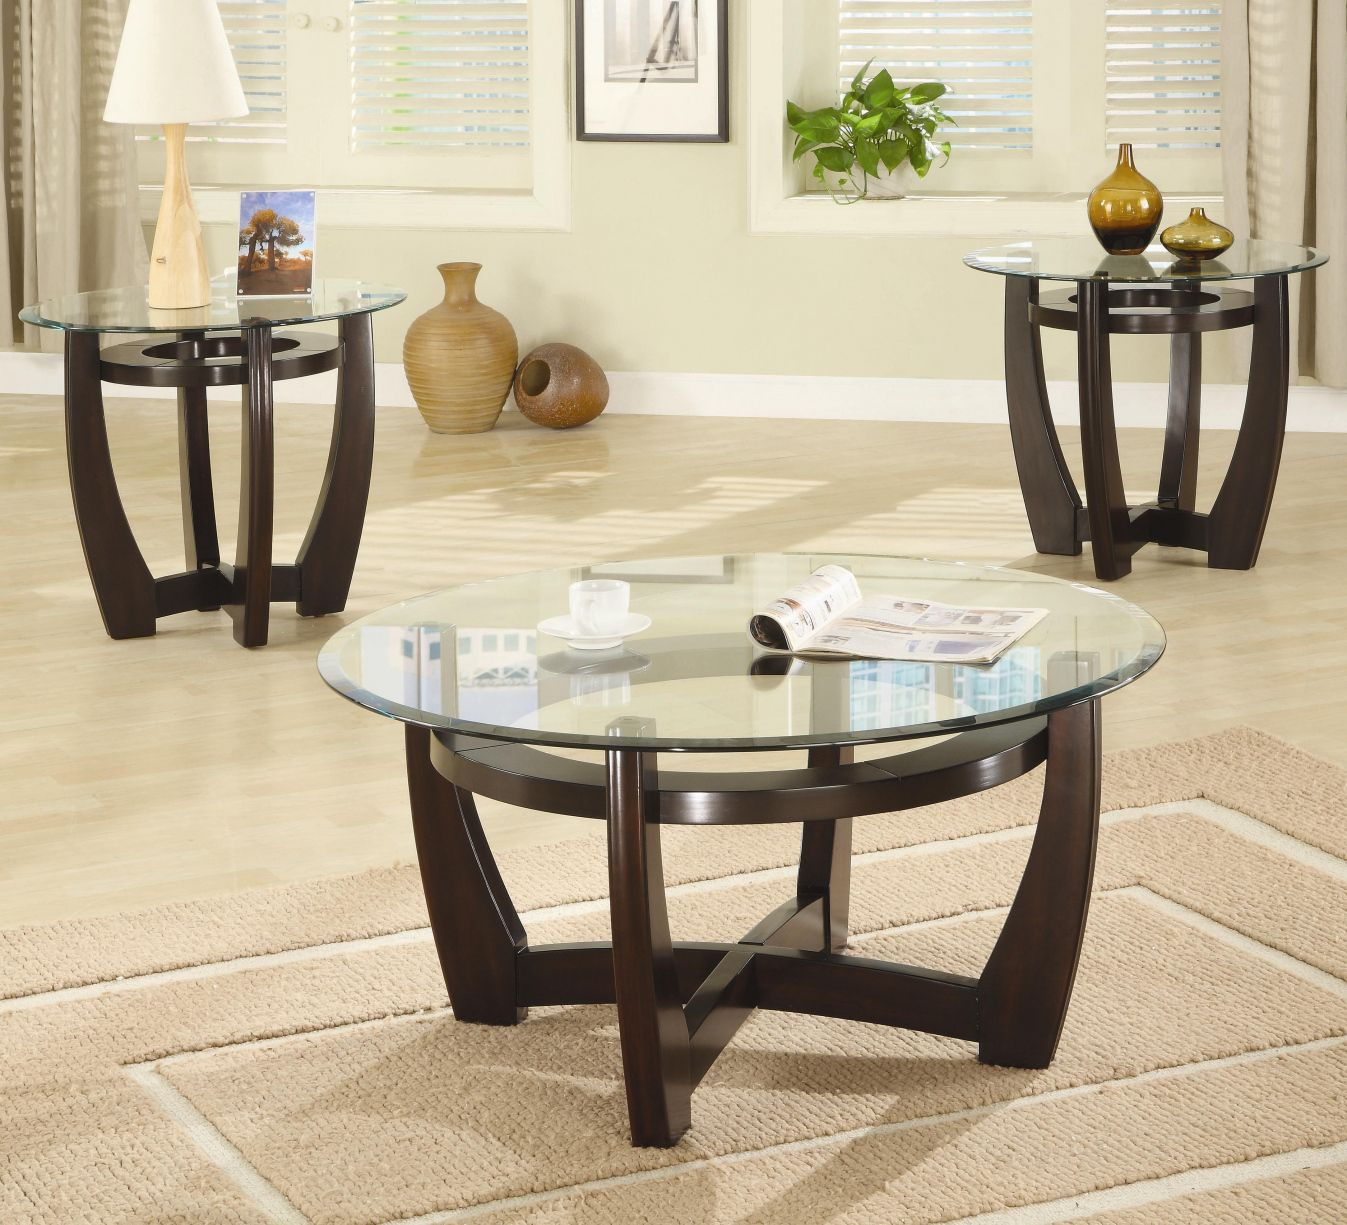 Perfekt Round Glass Coffee Table Sets   Diy Modern Furniture Check More At Http://